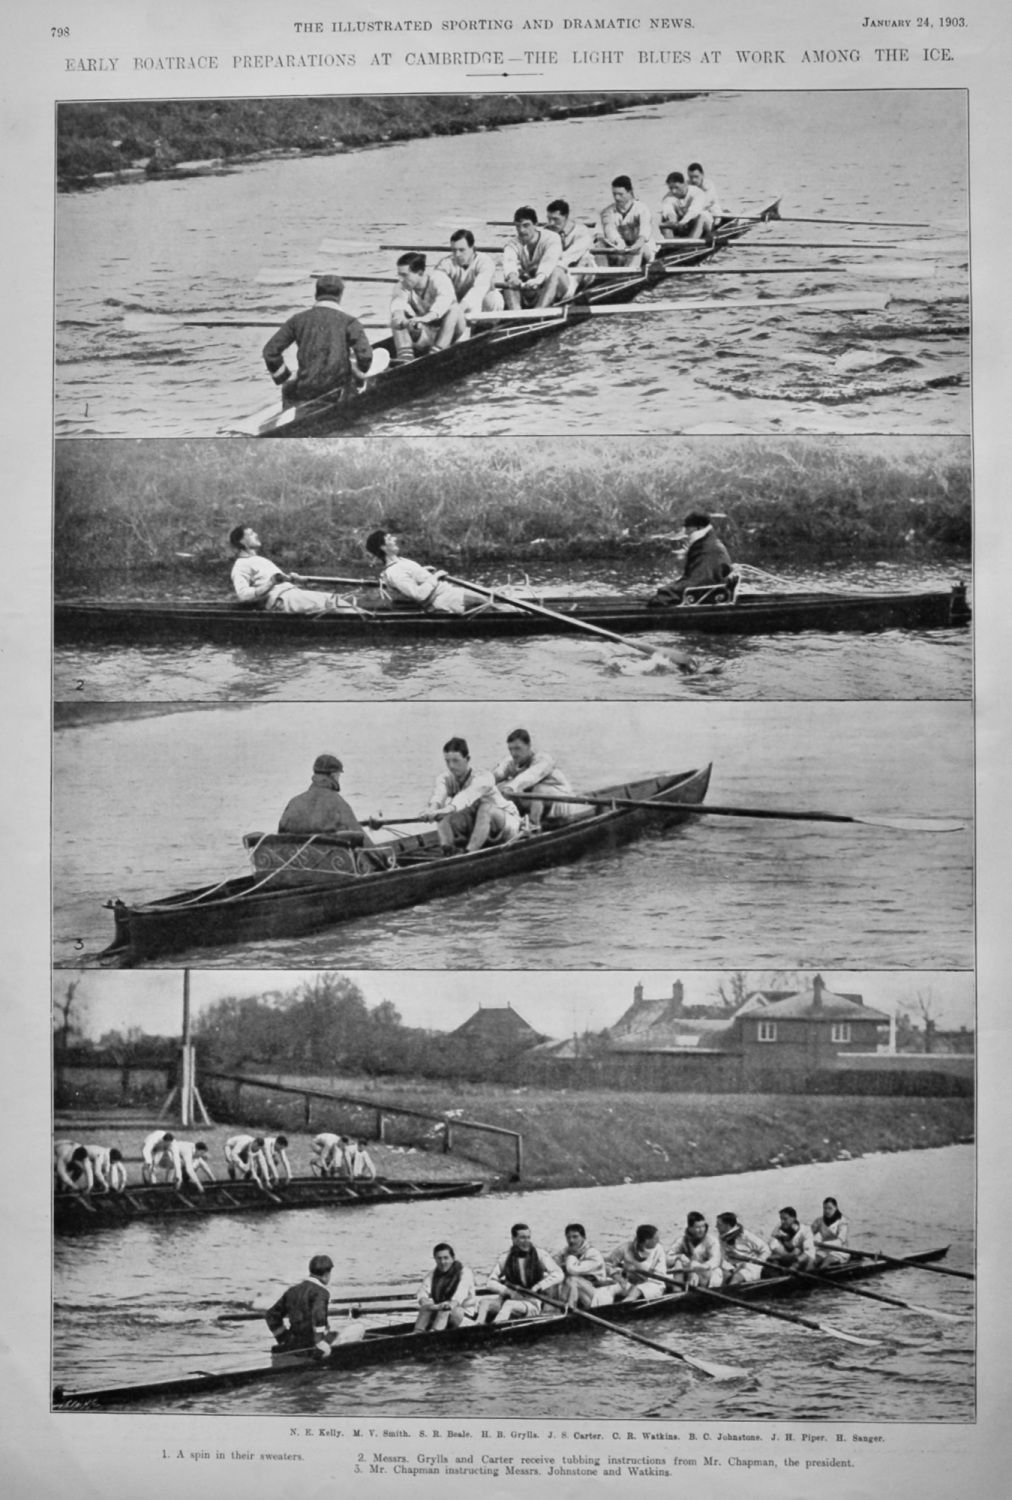 Early Boatrace Preparations at Cambridge - The Light Blues at Work among th